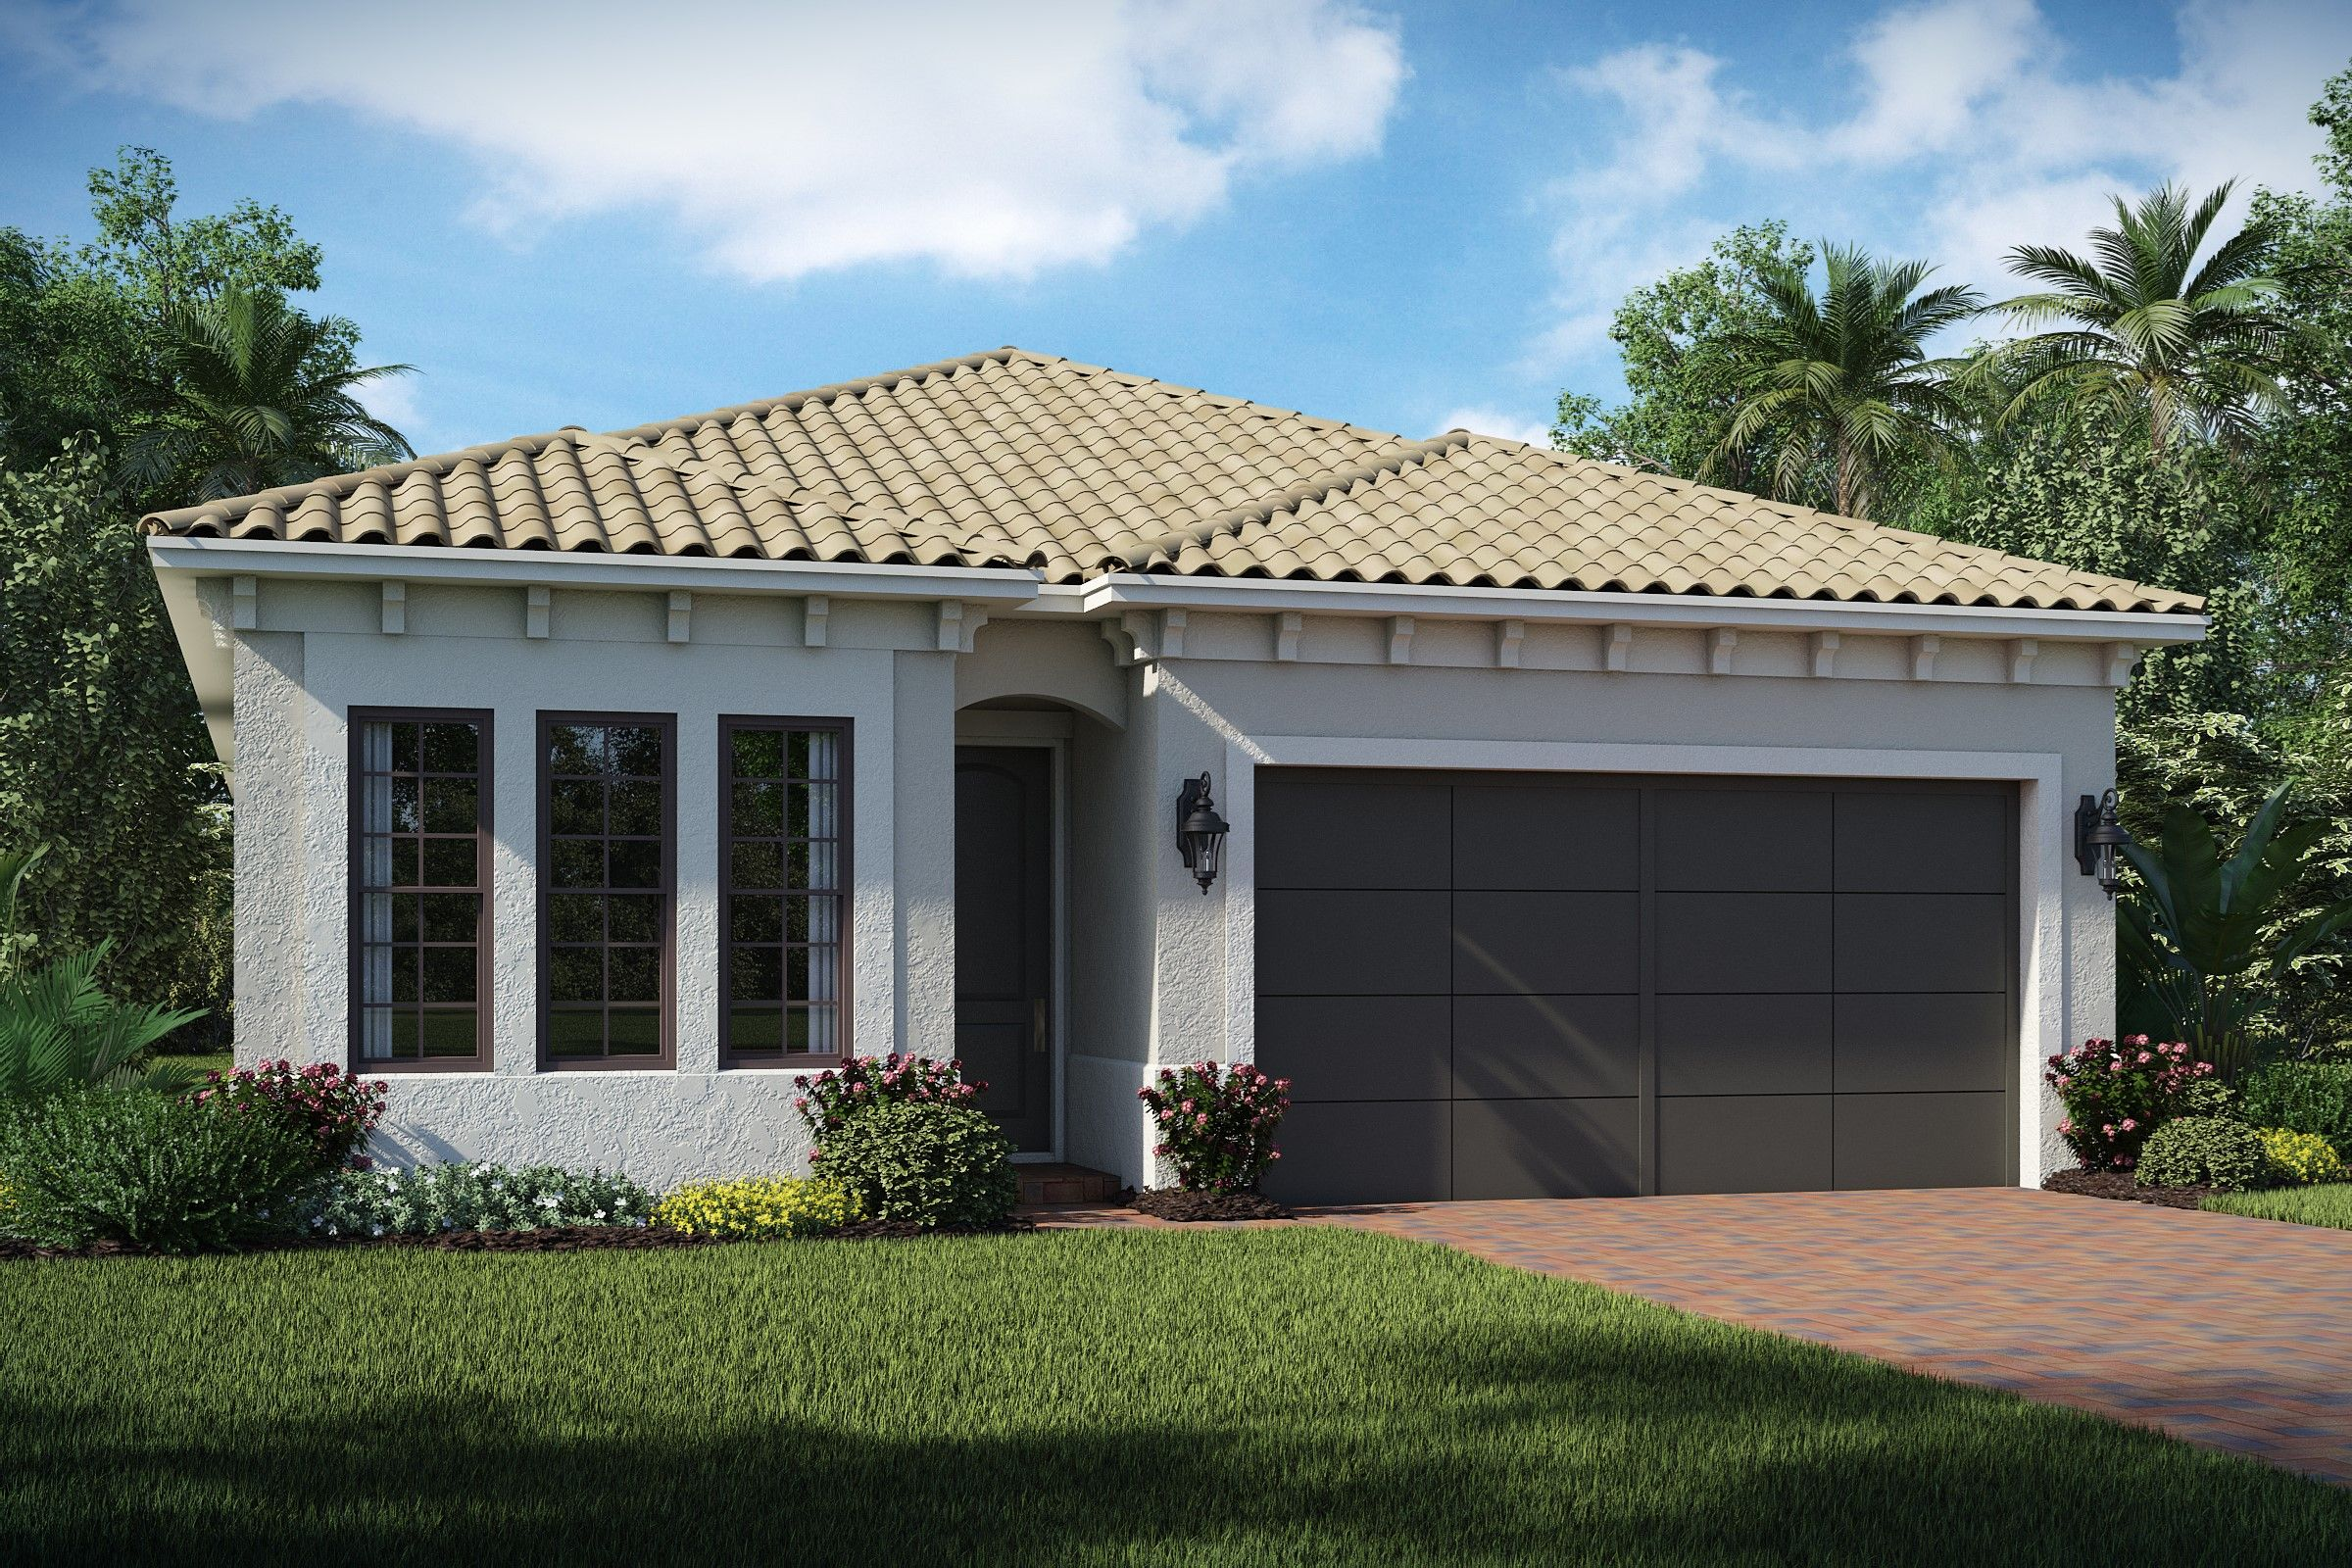 Single Family for Active at Coral Lago - Atocia University Drive And Nw 39th Street Coral Springs, Florida 33075 United States